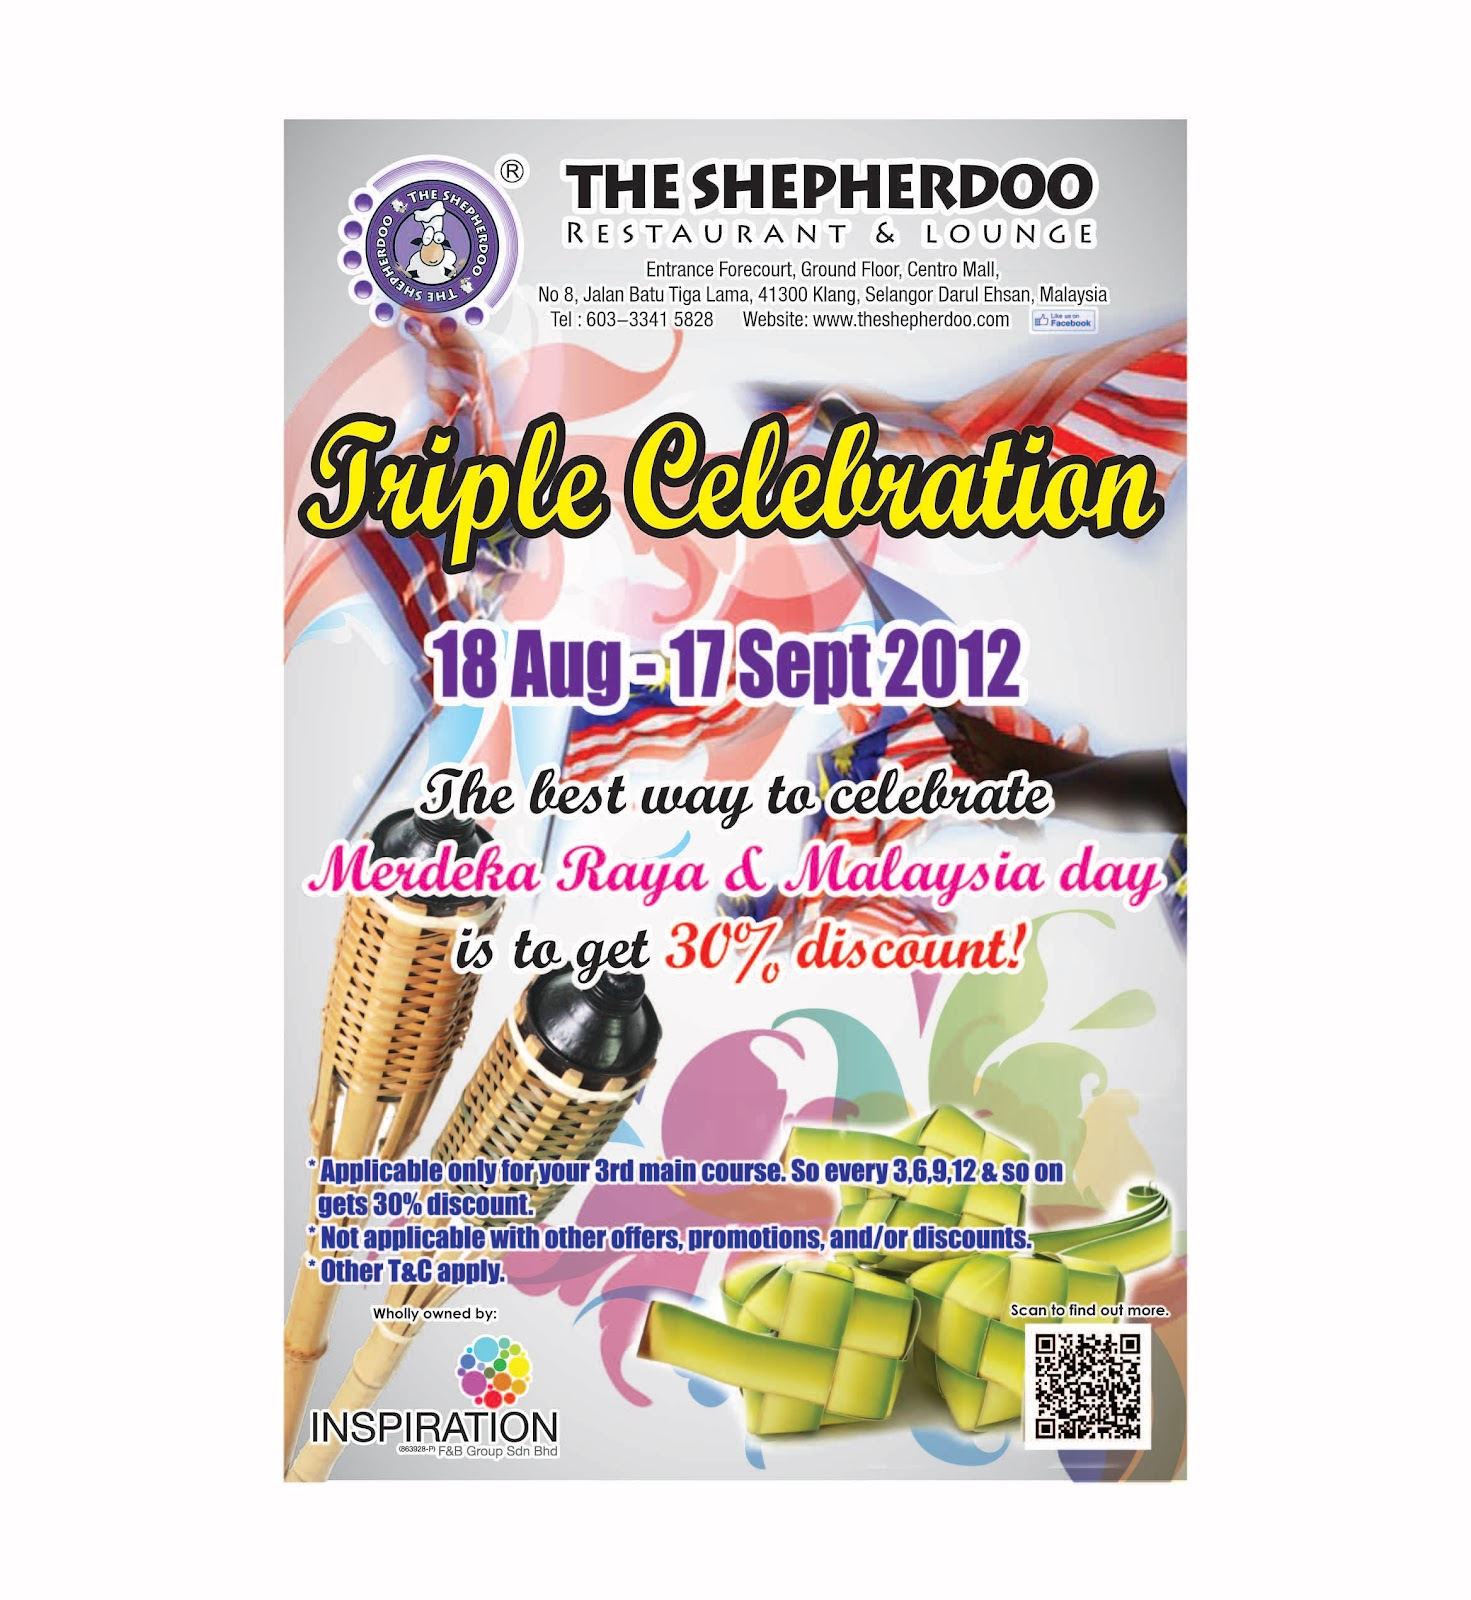 Triple Celebration at The Shepherdoo